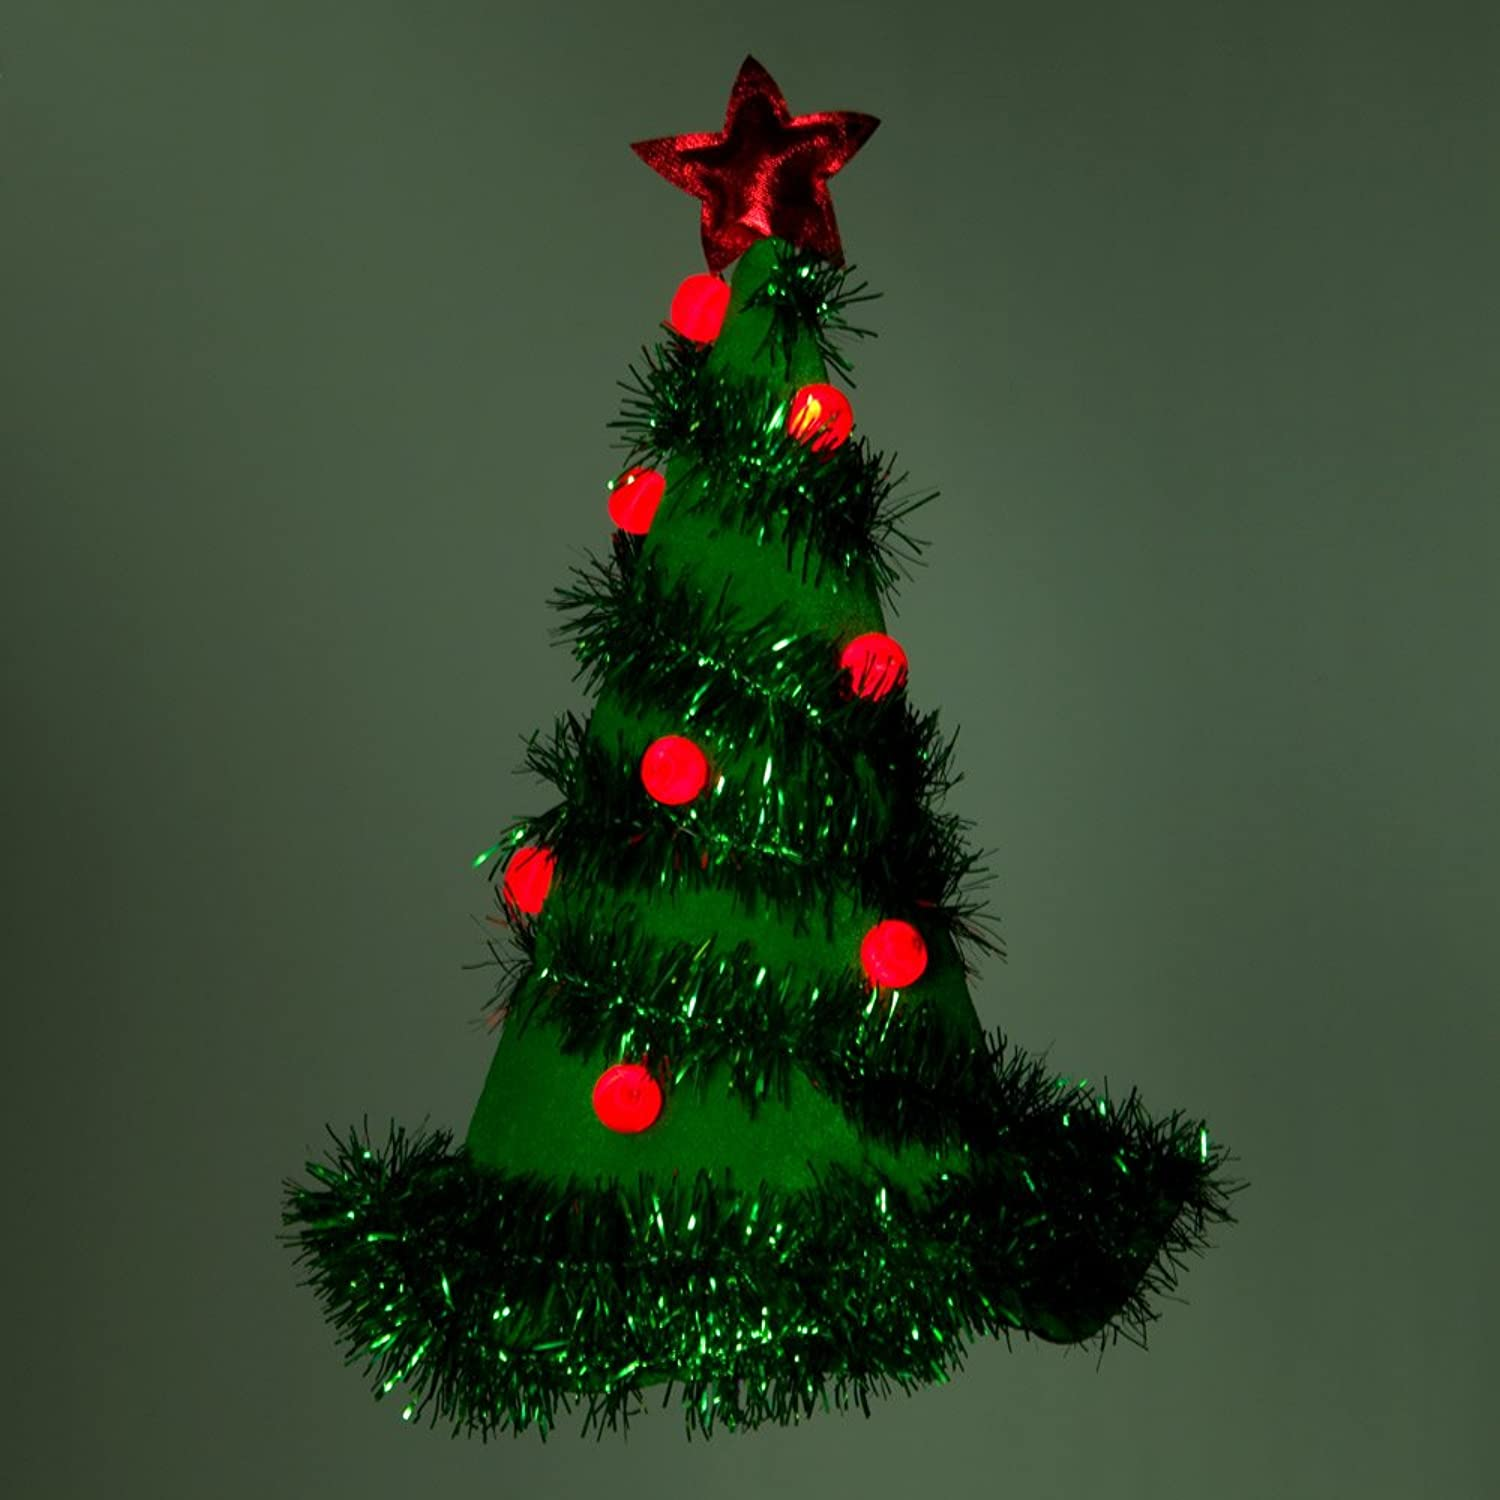 Amazon.com: Light Up Christmas Tree Hat - Green Pkg/ (1): Clothing